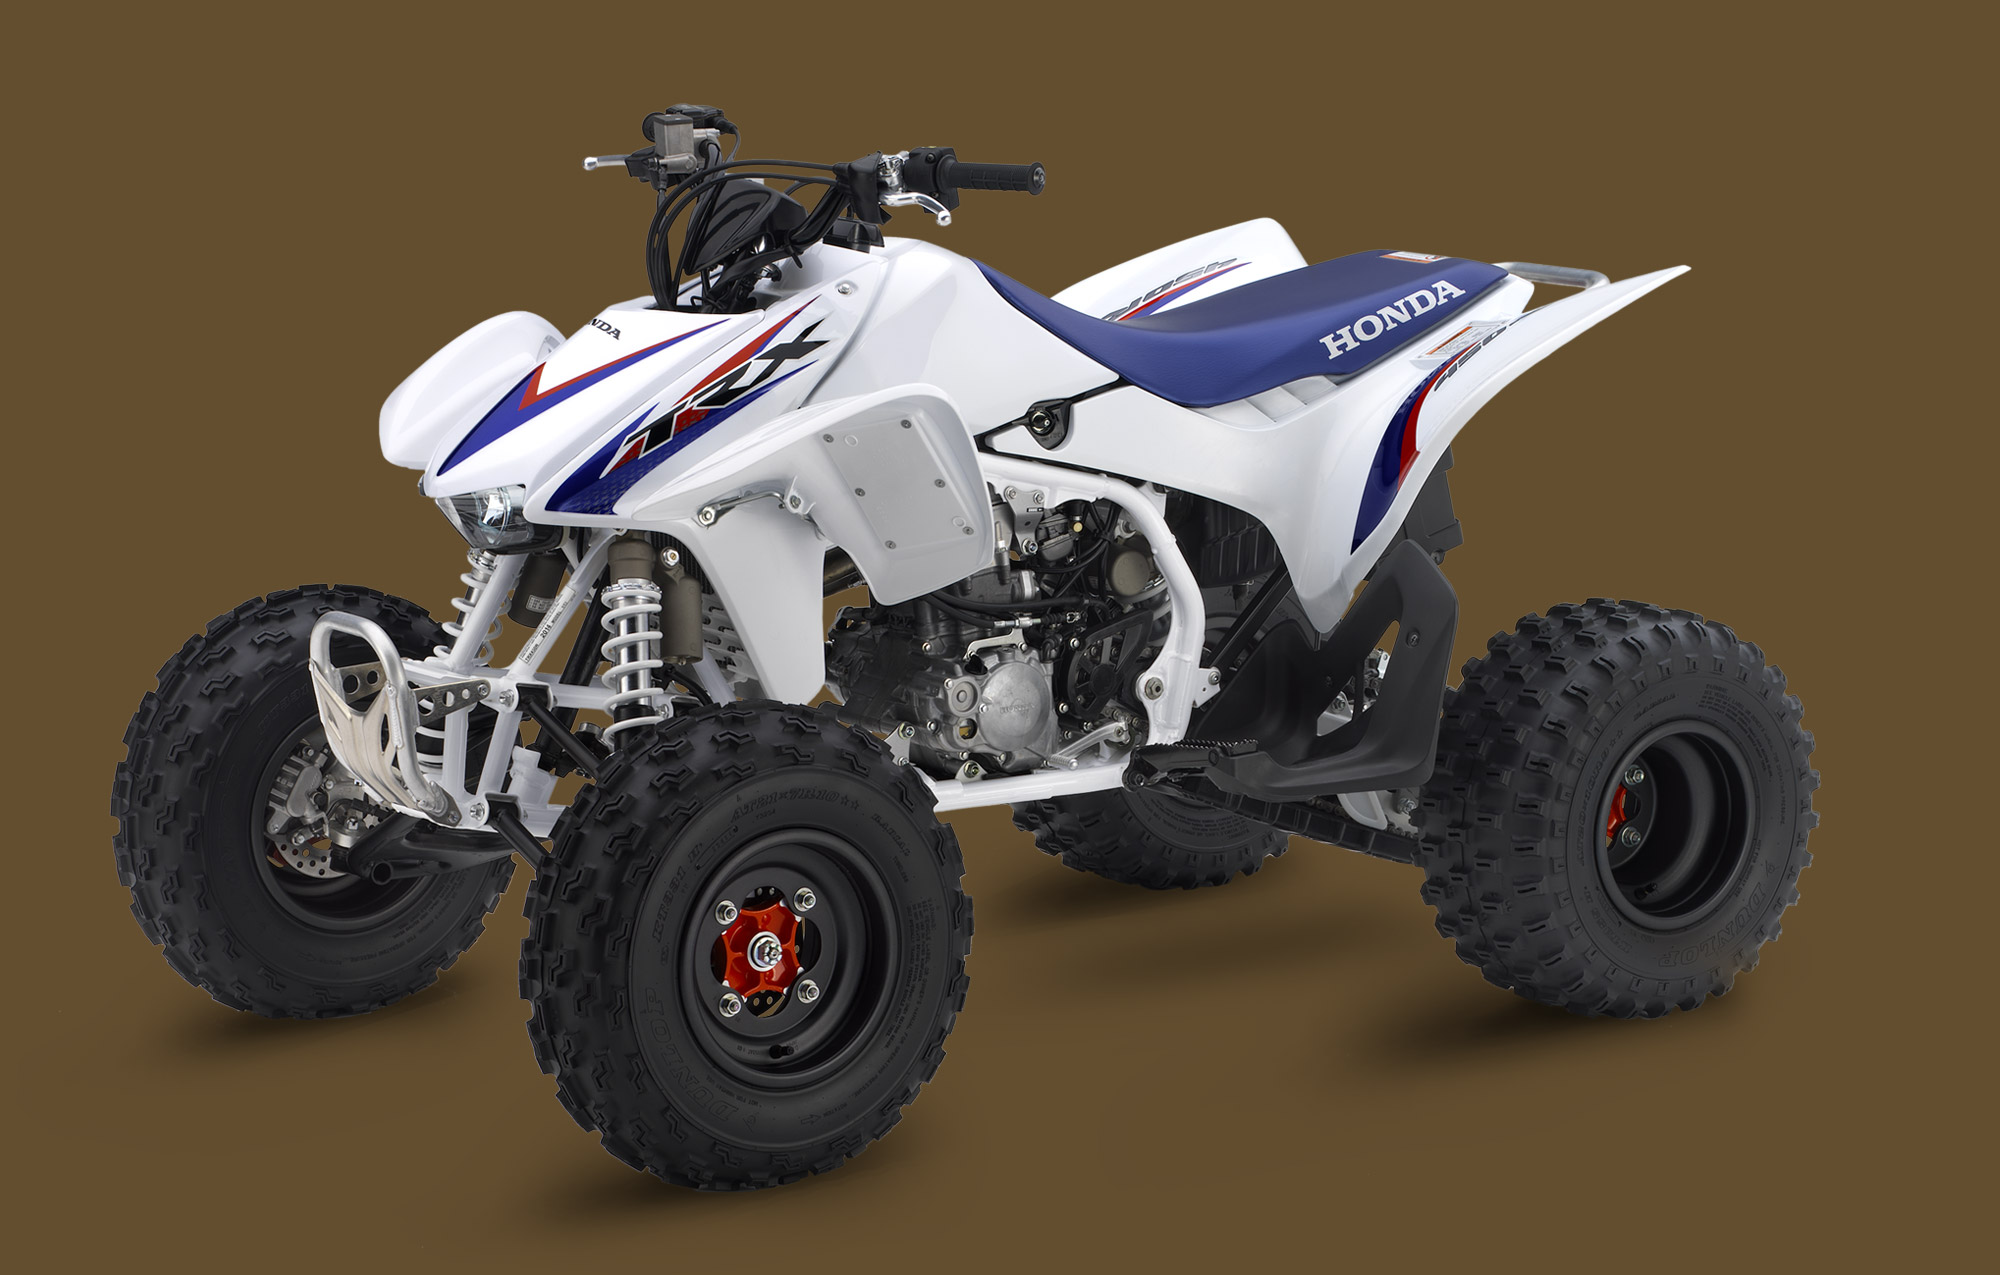 2018 Honda Trx 450 >> 2014 Honda TRX450R Arrives - autoevolution